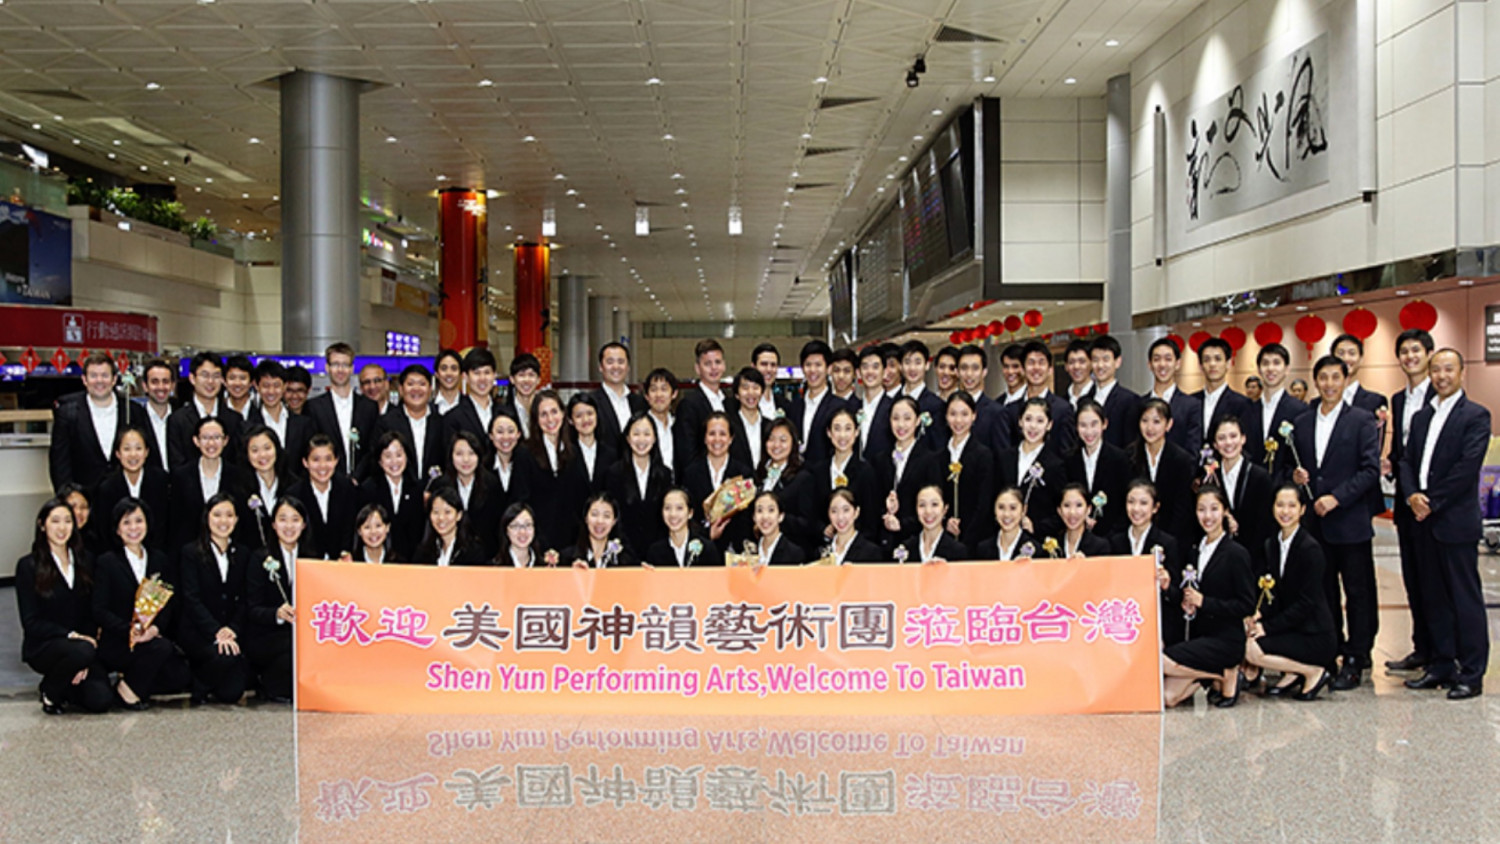 Shen Yun Receives Accolades in Taiwan for Reviving Traditional Chinese Culture